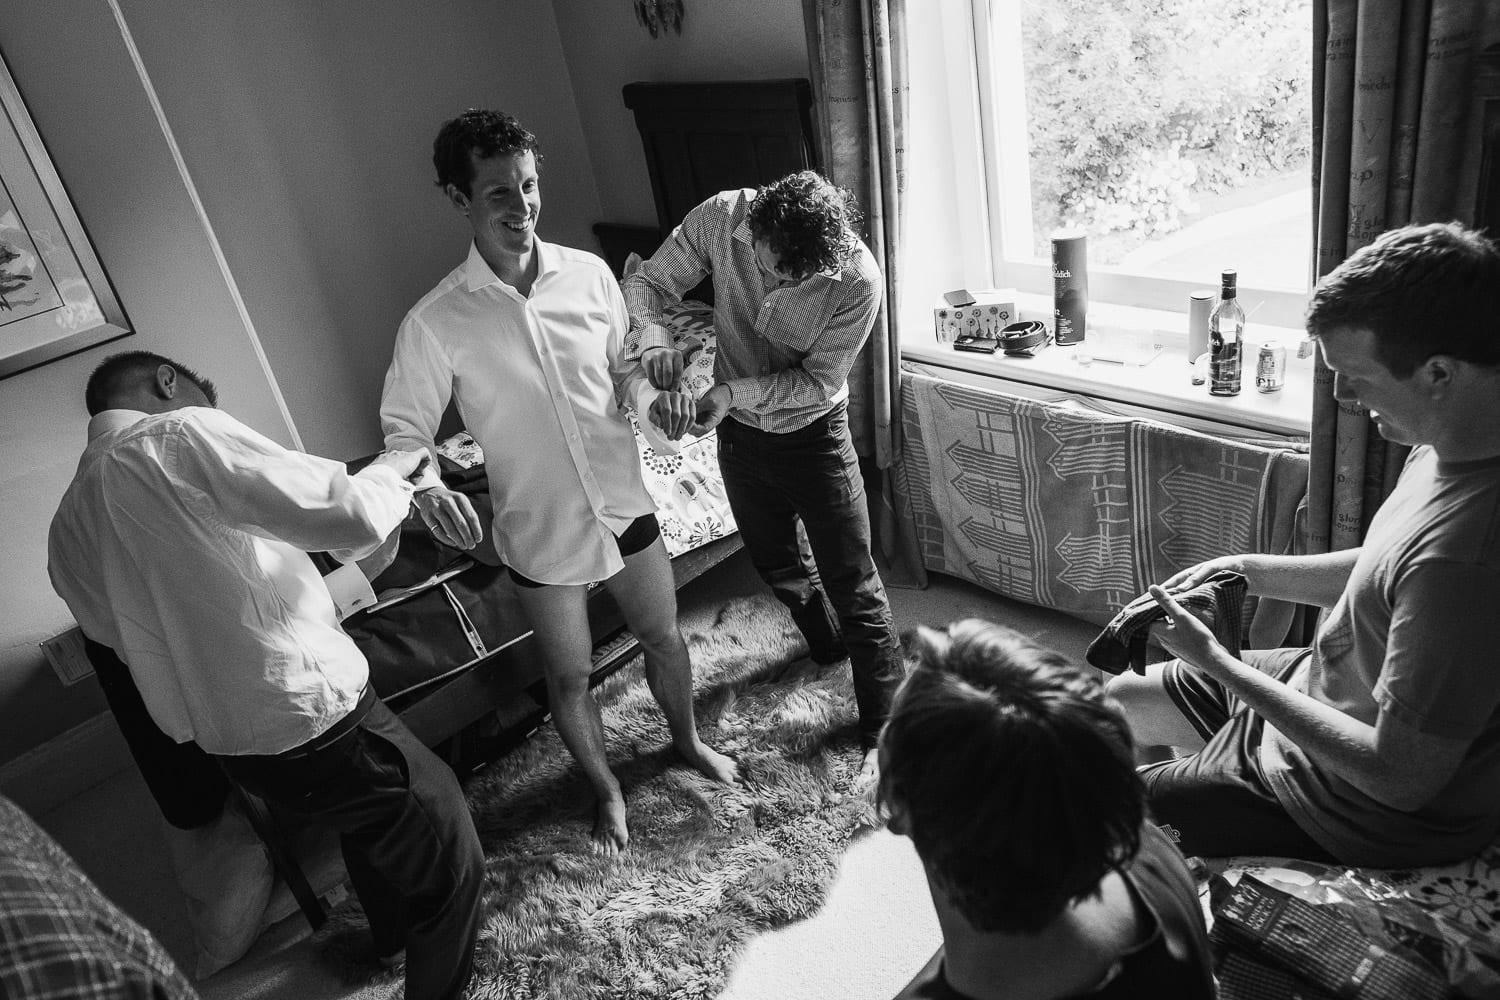 The groomsmen help the groom get dressed